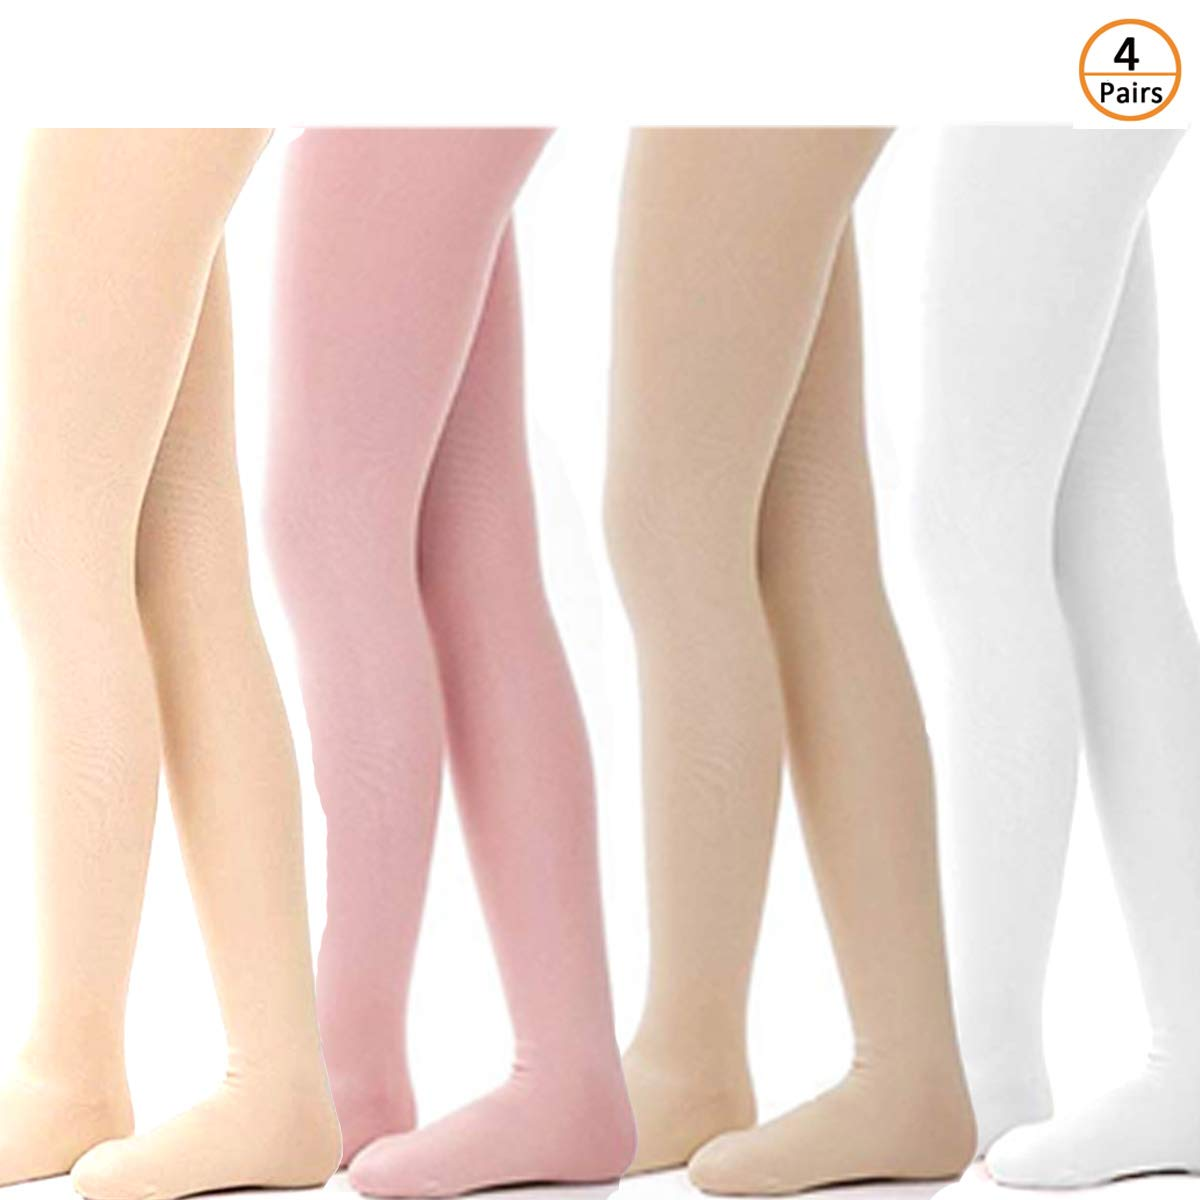 Summer Win 4 Pairs Girls Ultra Soft Pro Dance Tights Ballet Footed Tight